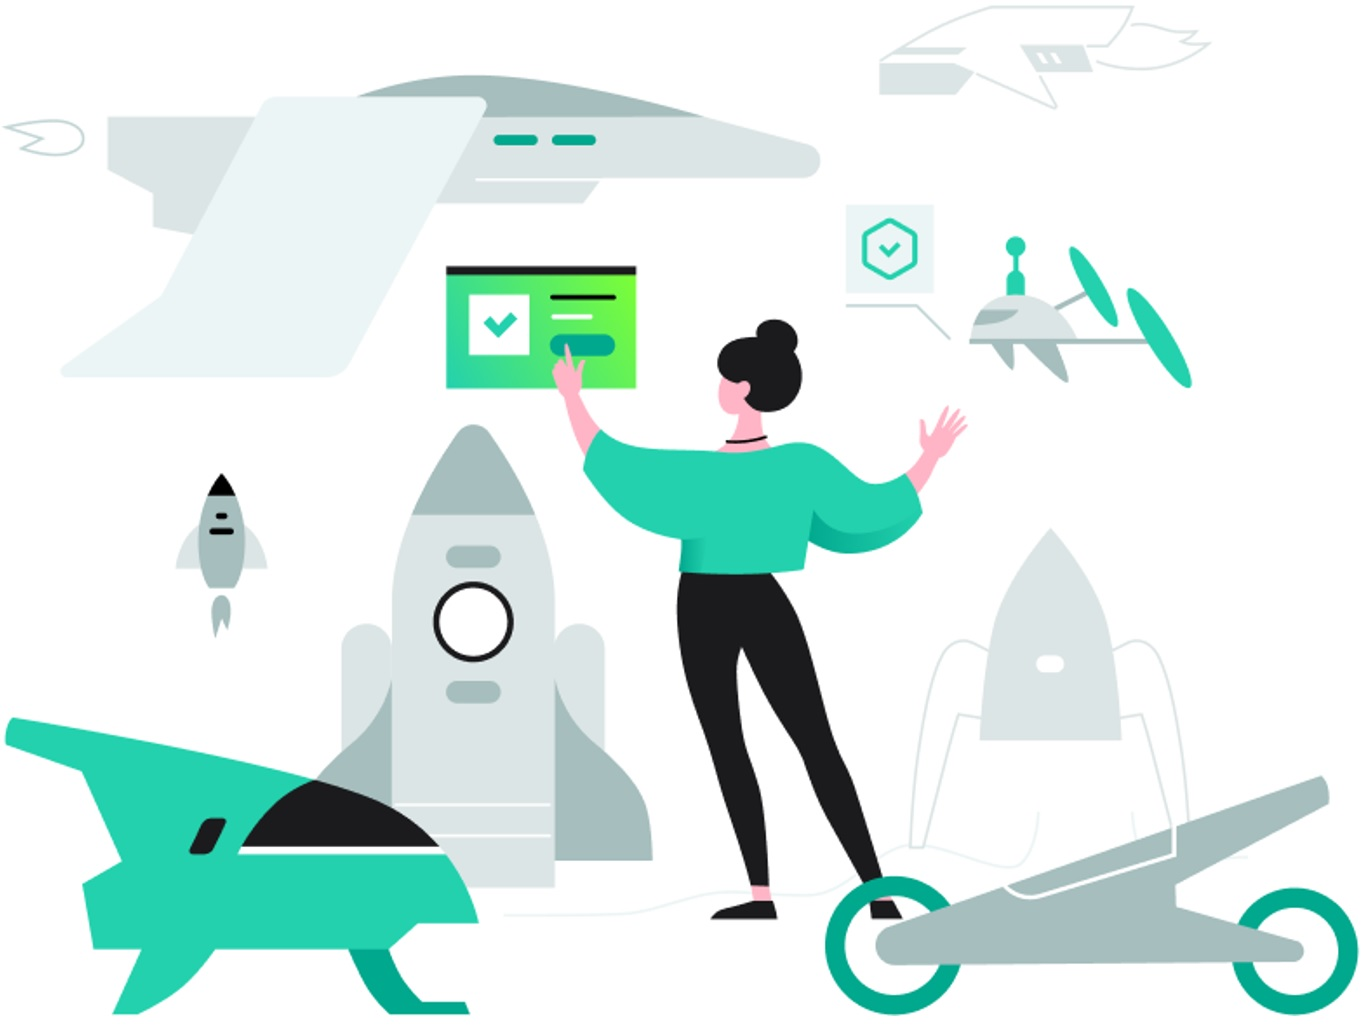 Making Sense of Our Place in the Digital Reputation Economy